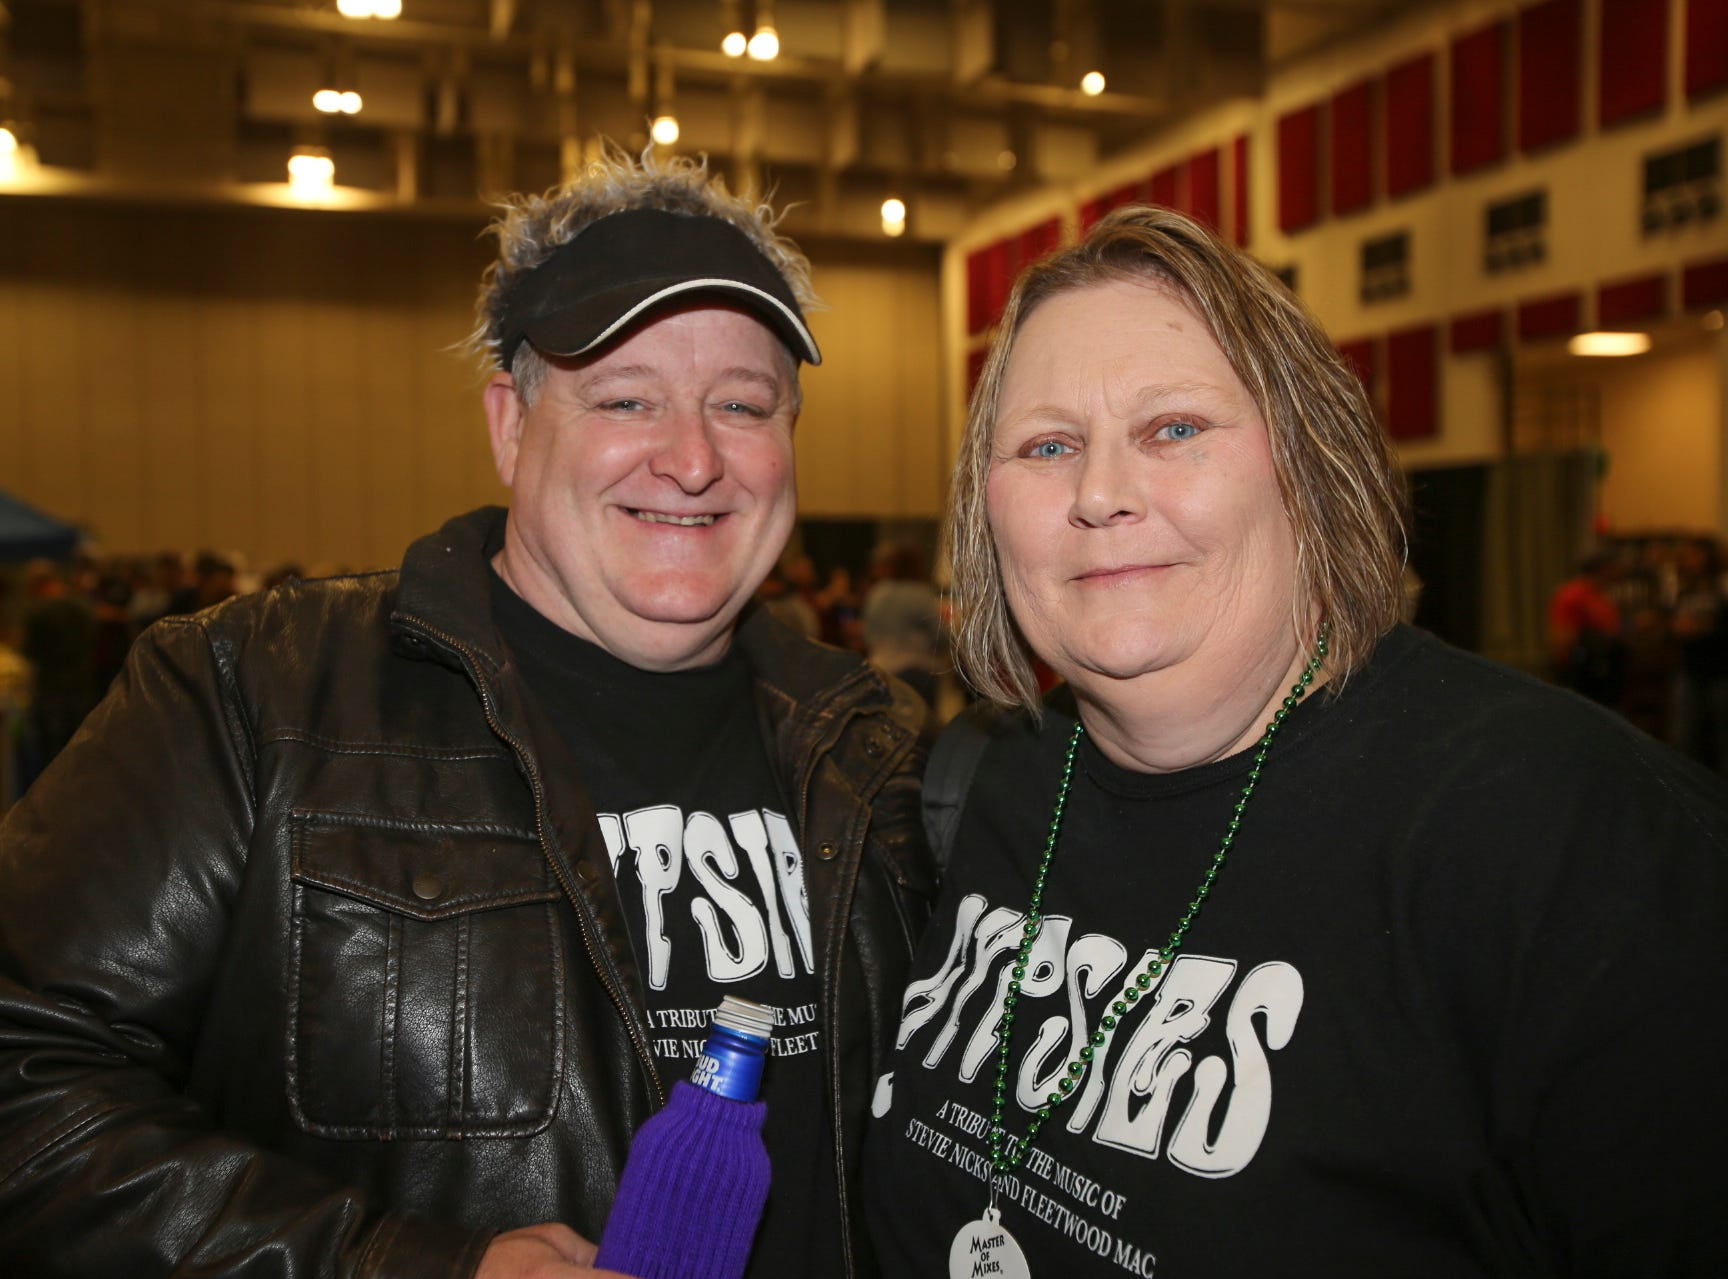 Kevin and Sheila Keener